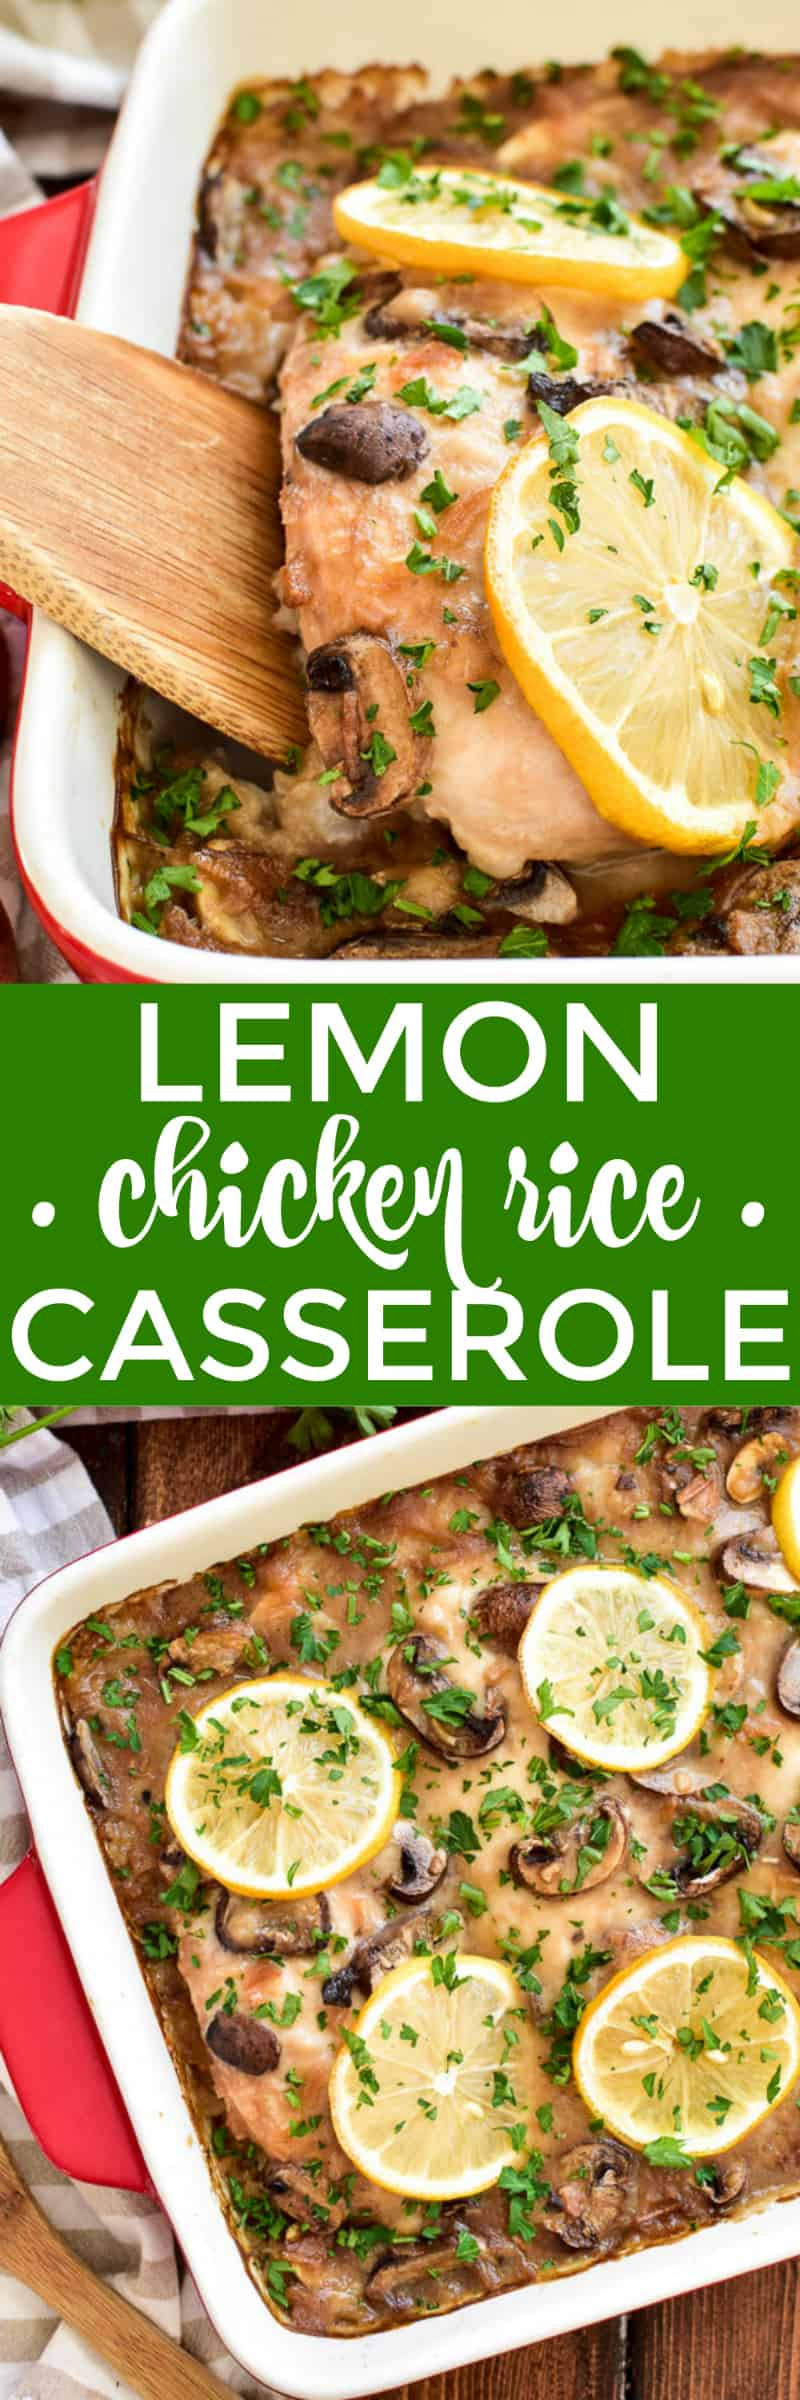 Lemon Chicken Rice Casserole makes the BEST weeknight dinner! It's easy to prep - with just 8 simple ingredients - and oven-ready in less than 10 minutes. This recipe takes classic chicken & rice casserole to the next level with the addition of fresh mushrooms and a burst of lemon. If your family loves chicken, you'll definitely want to add this casserole to your dinner rotation!